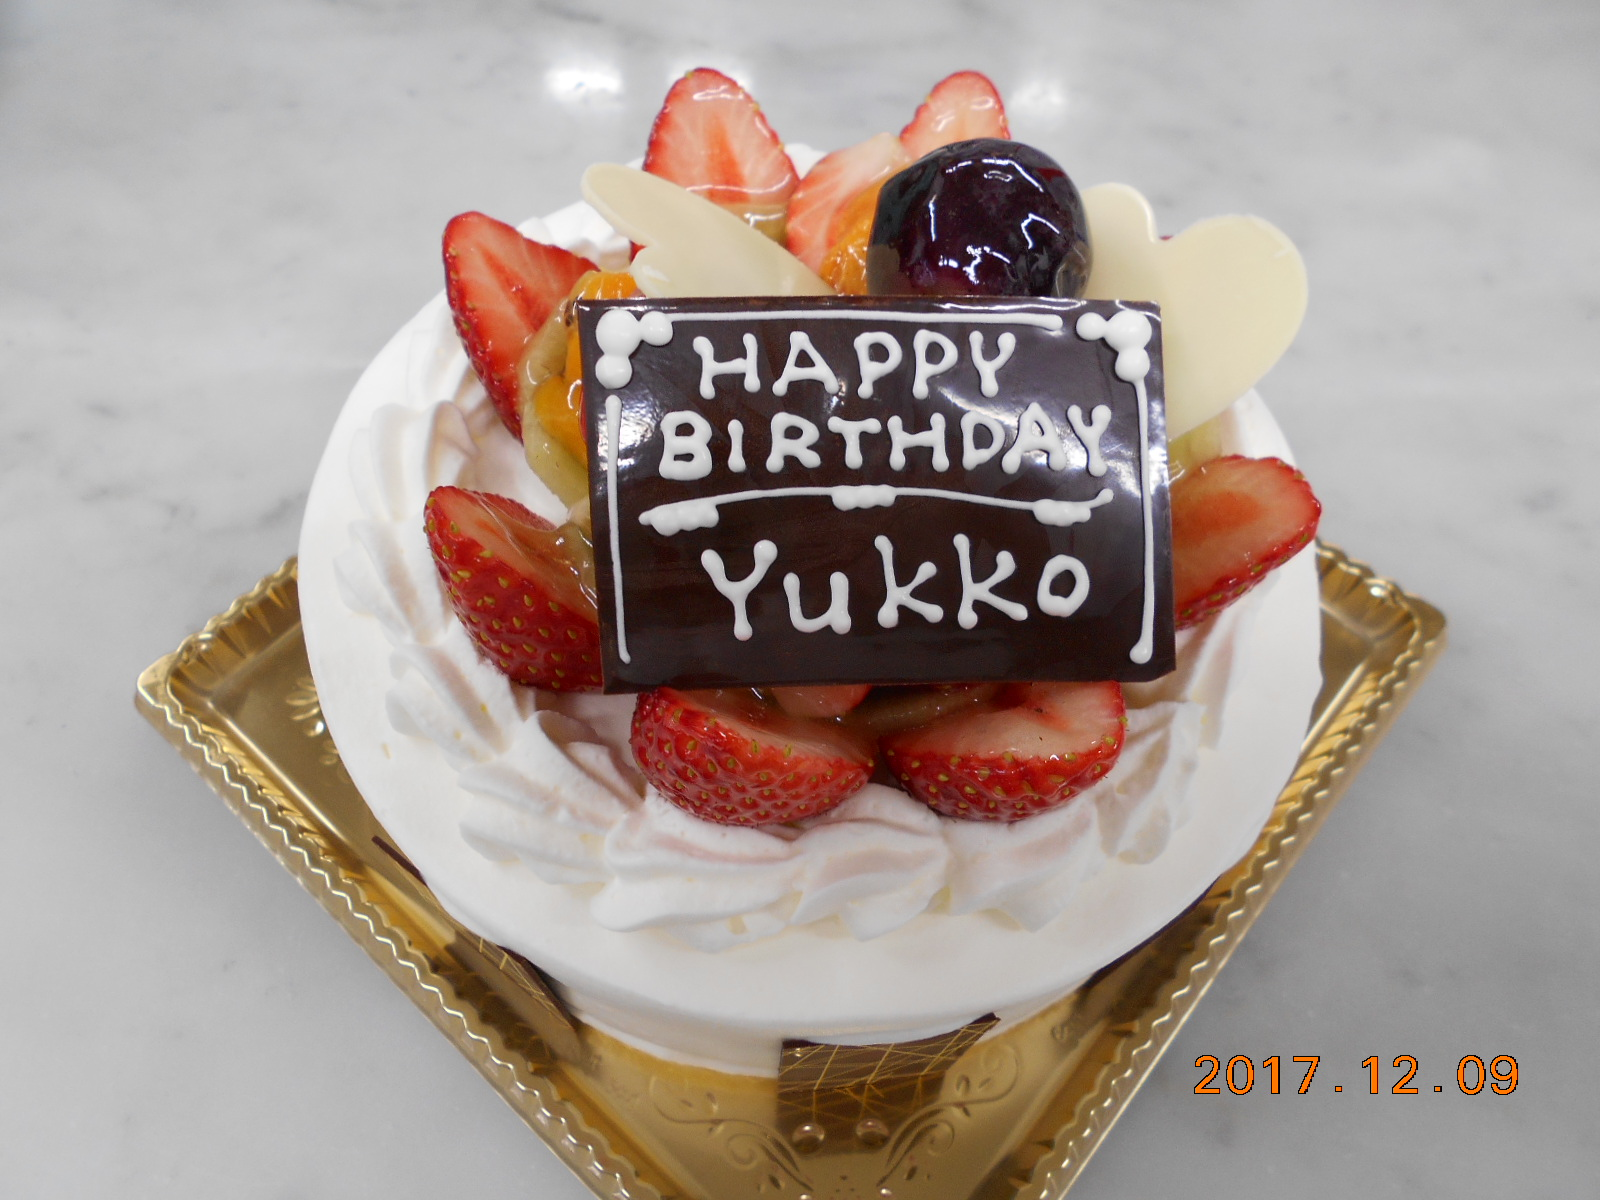 HAPPY BIRTHDAY  YUKKKO